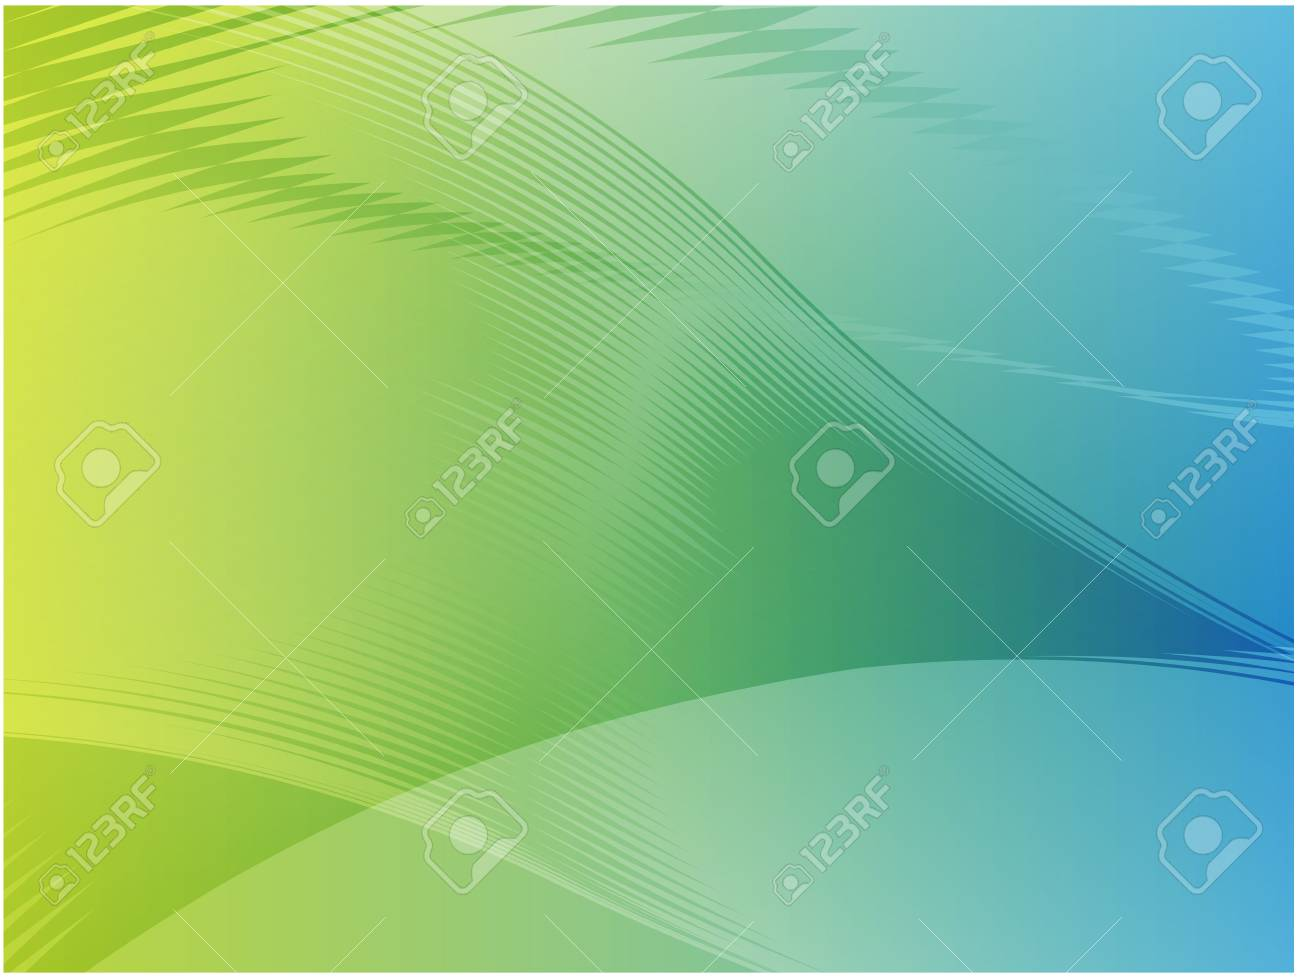 Abstract wallpaper illustration of wavy flowing energy and colors Stock Photo - 3445849